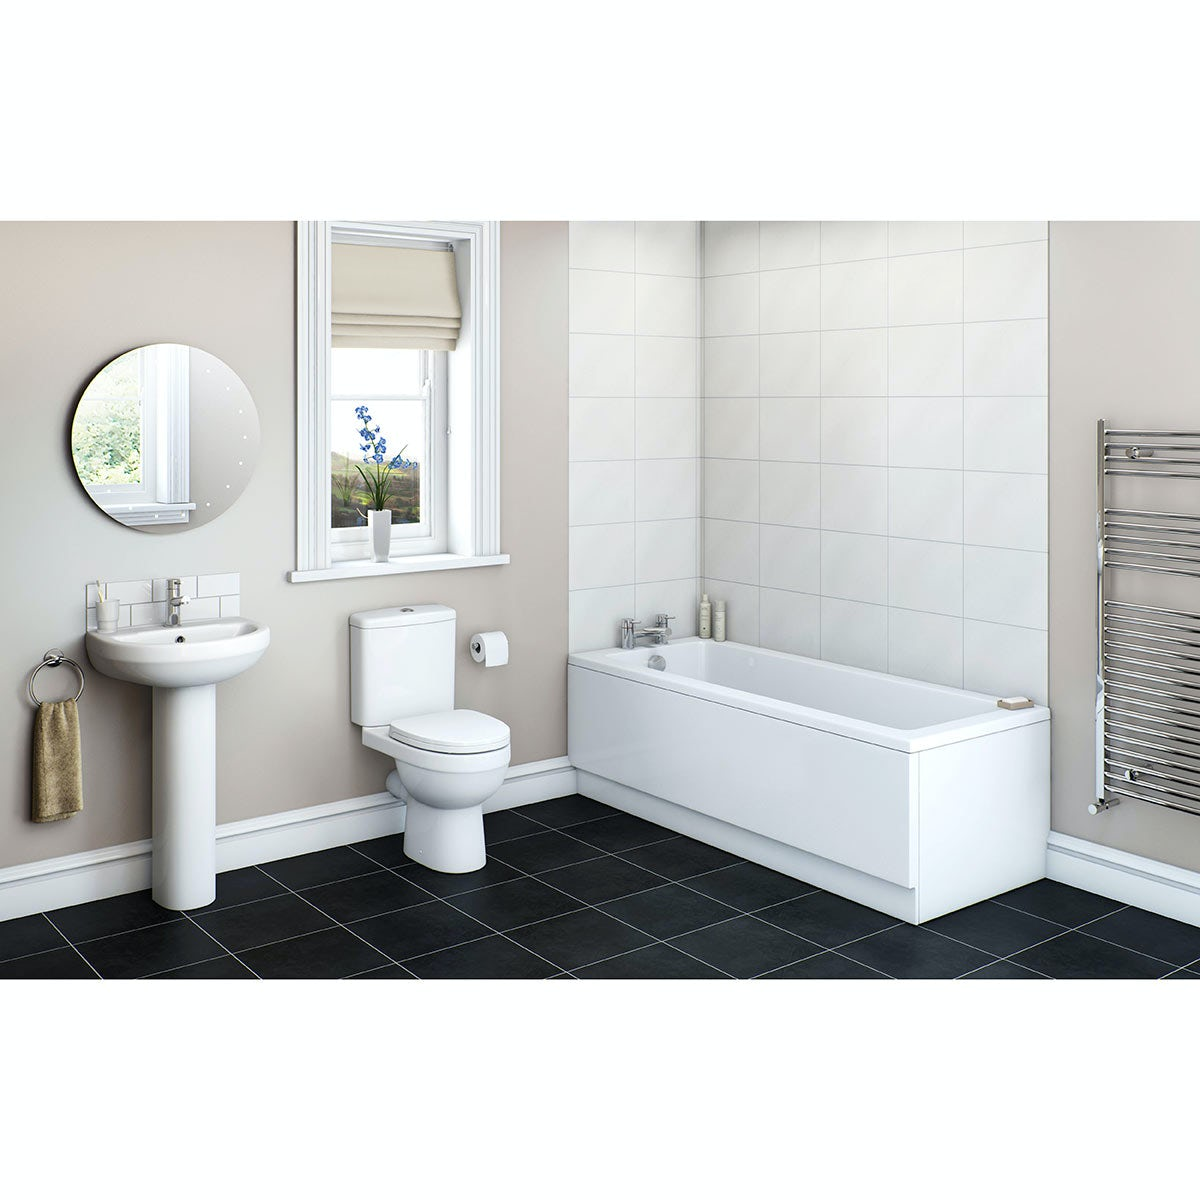 Orchard Eden bathroom suite with straight bath